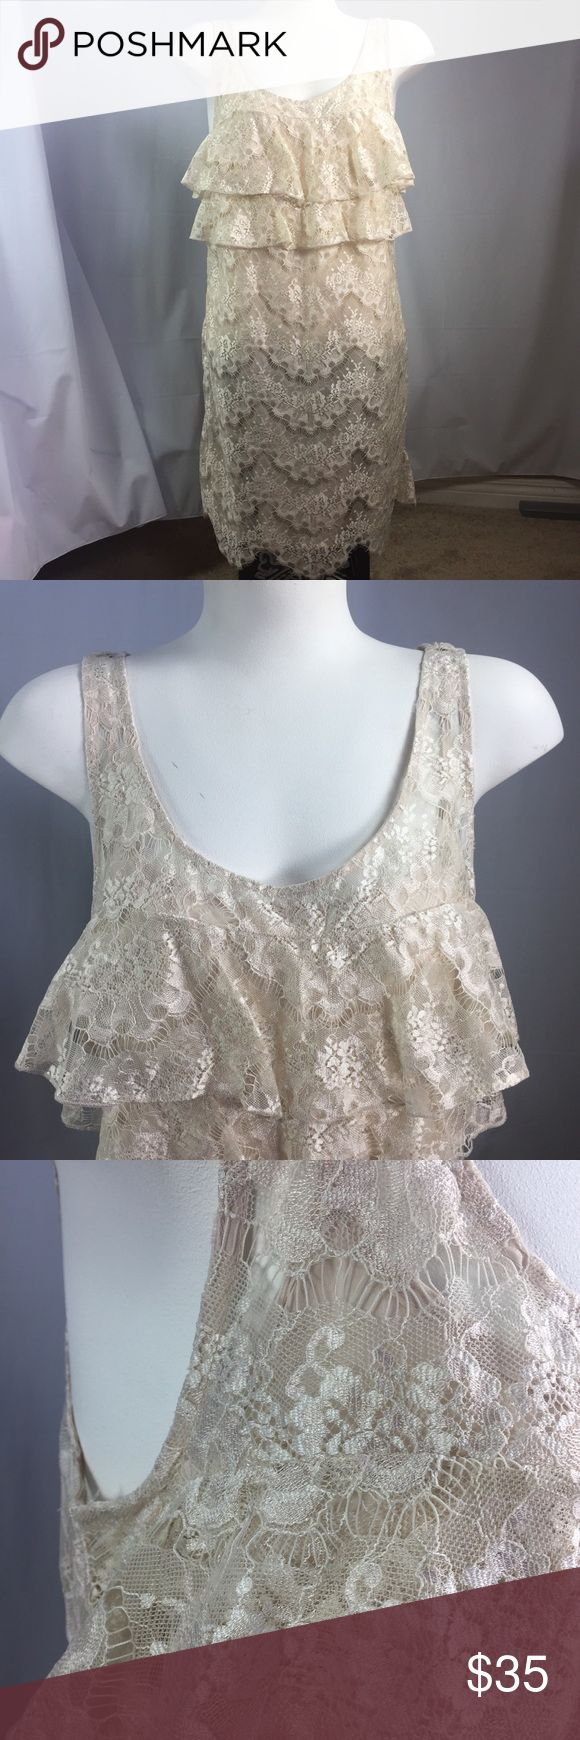 FREE PEOPLE Lace Ruffle Dress Blush, Cream Sz 8 Delicate sleeveless lace dress with an inner spaghetti strap slip, straps are adjustable. Preowned, in good condition, no flaws. Free People Dresses Midi